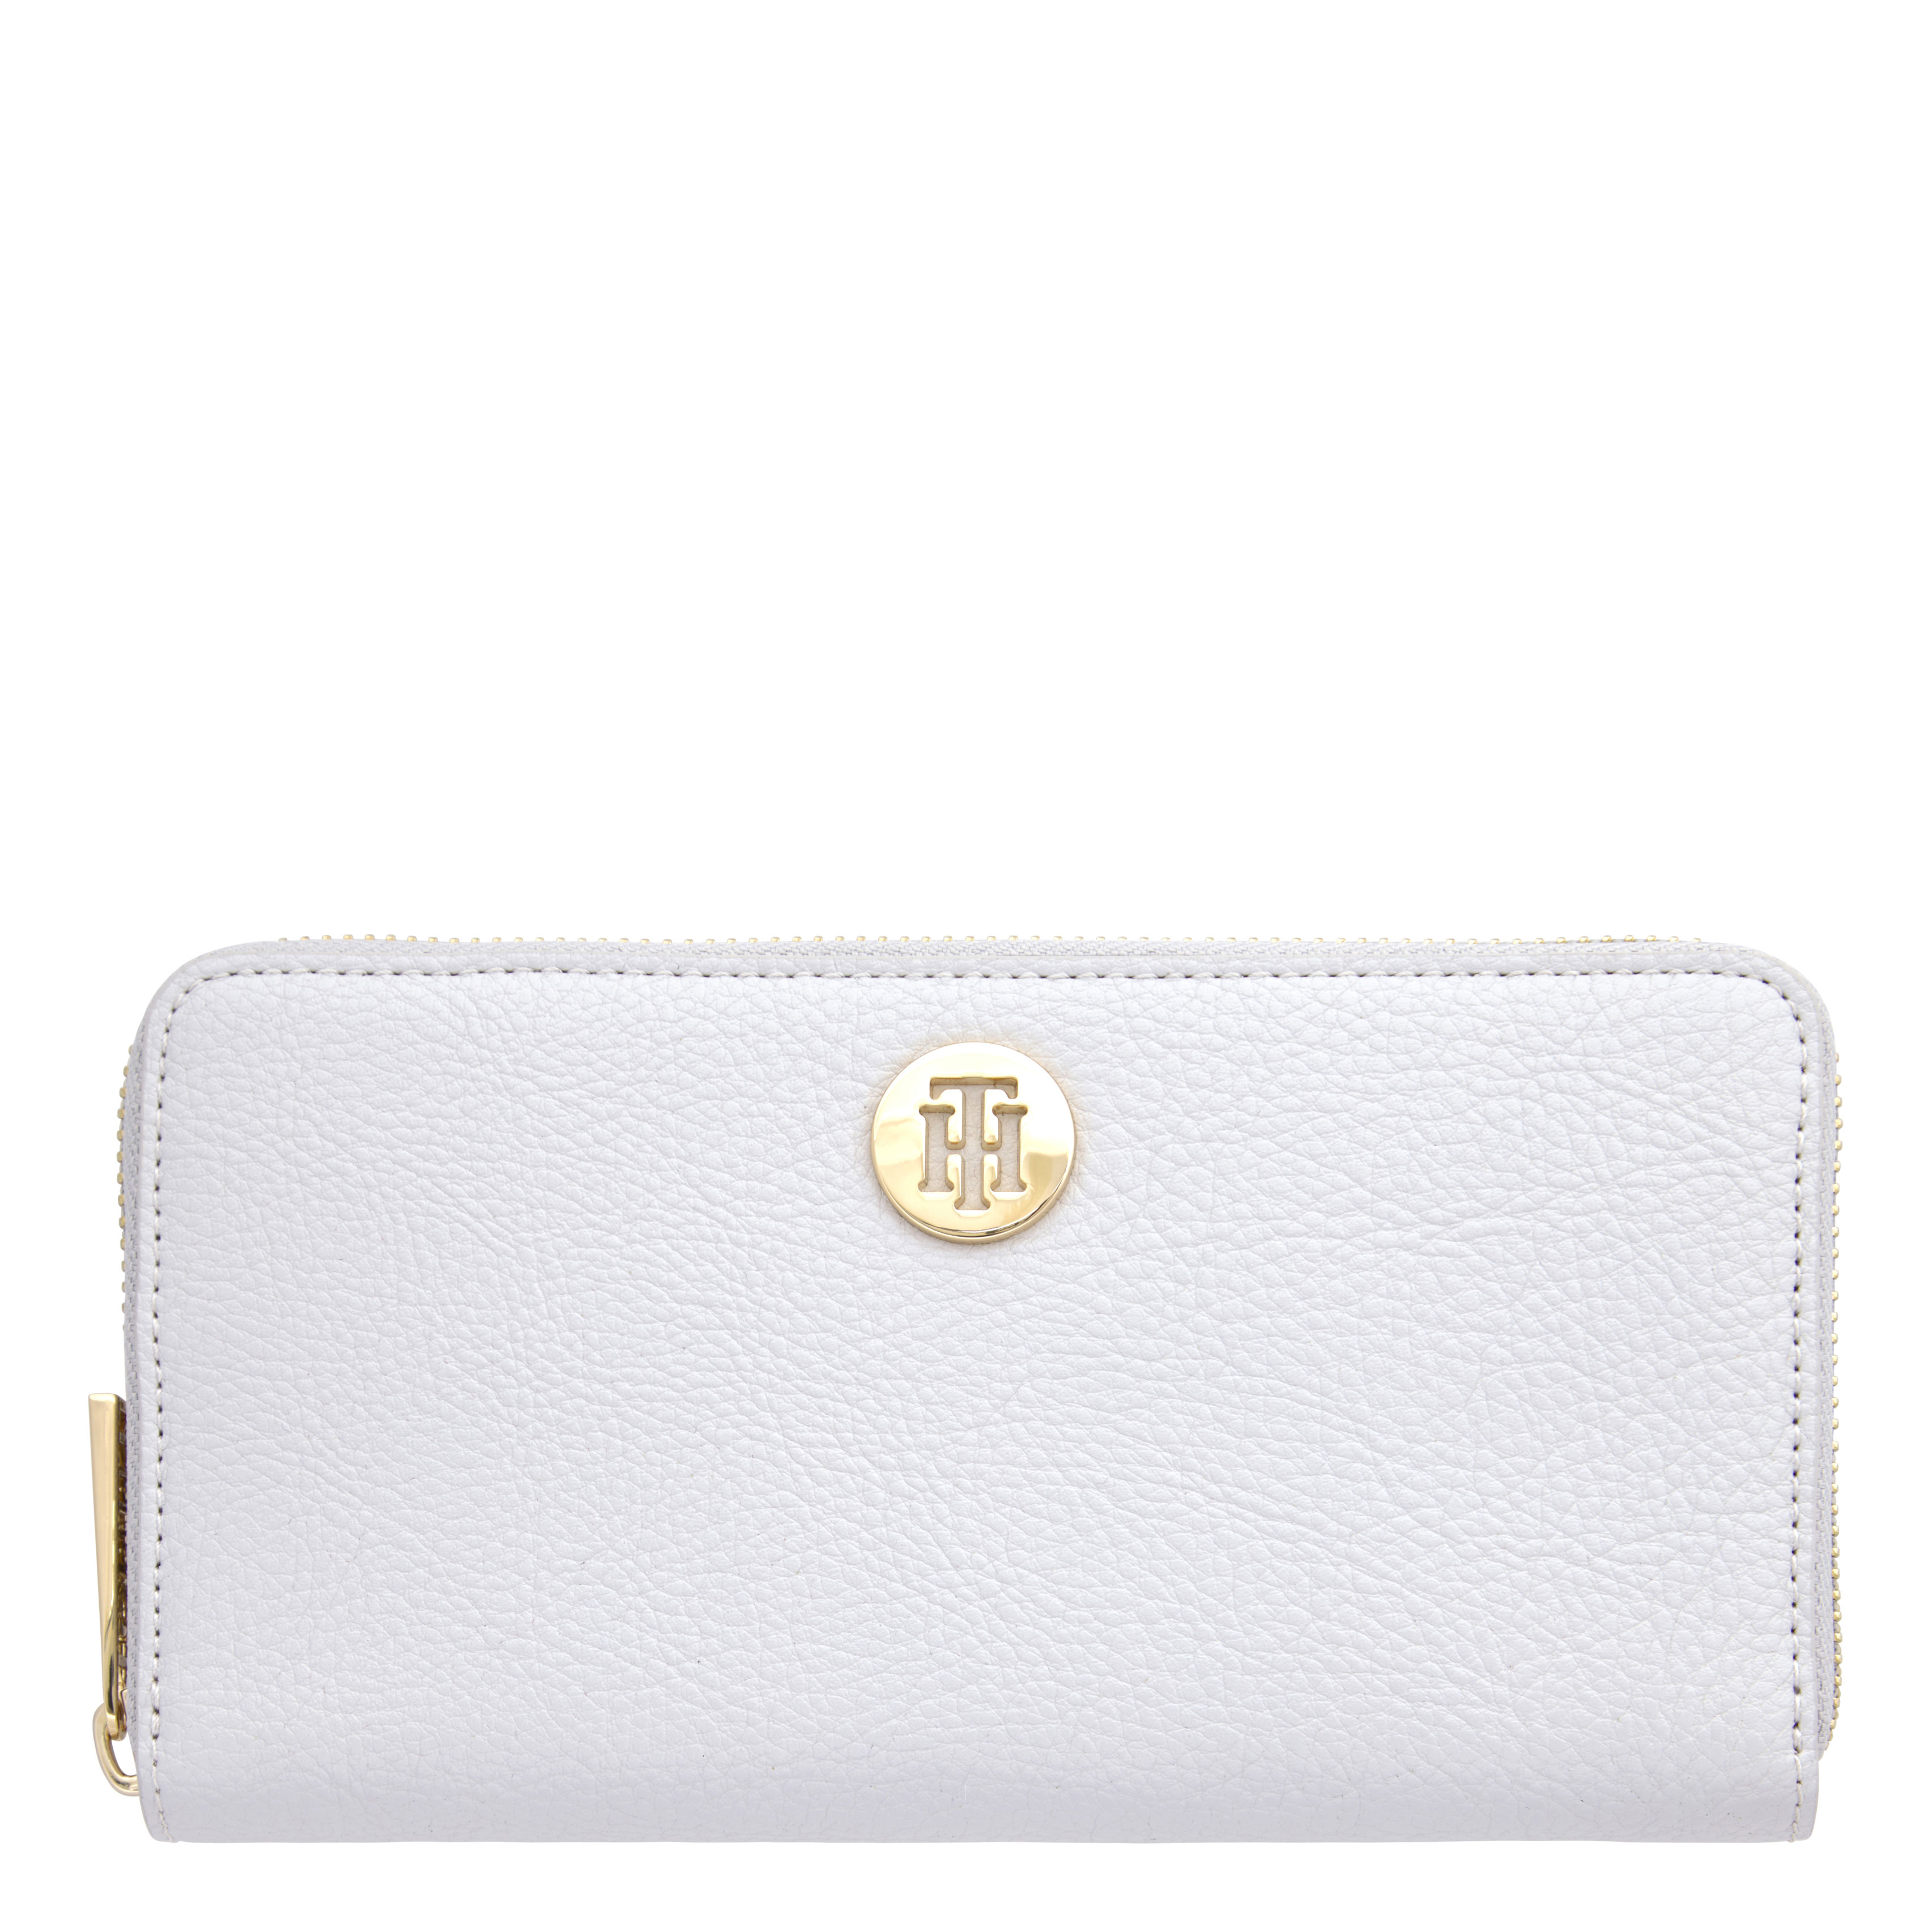 TOMMY HILFIGER Marroquinería Billetero Micro Chip AW0AW07733-PDB